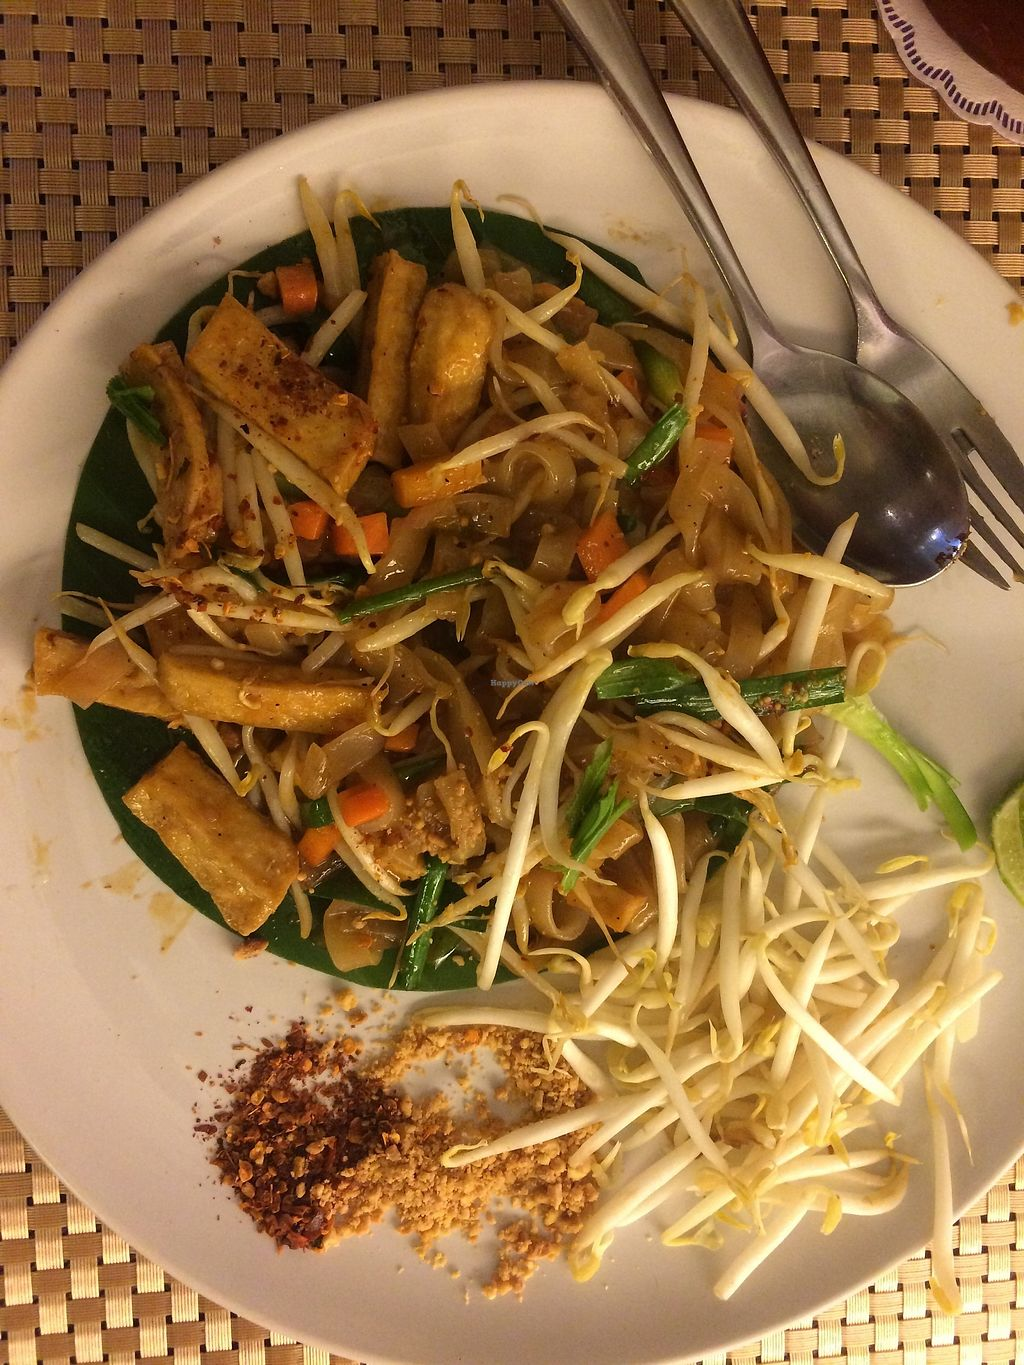 """Photo of May Veggie Home  by <a href=""""/members/profile/Megsriley_82"""">Megsriley_82</a> <br/>Vegan pad Thai with tofu <br/> April 2, 2018  - <a href='/contact/abuse/image/28511/379745'>Report</a>"""